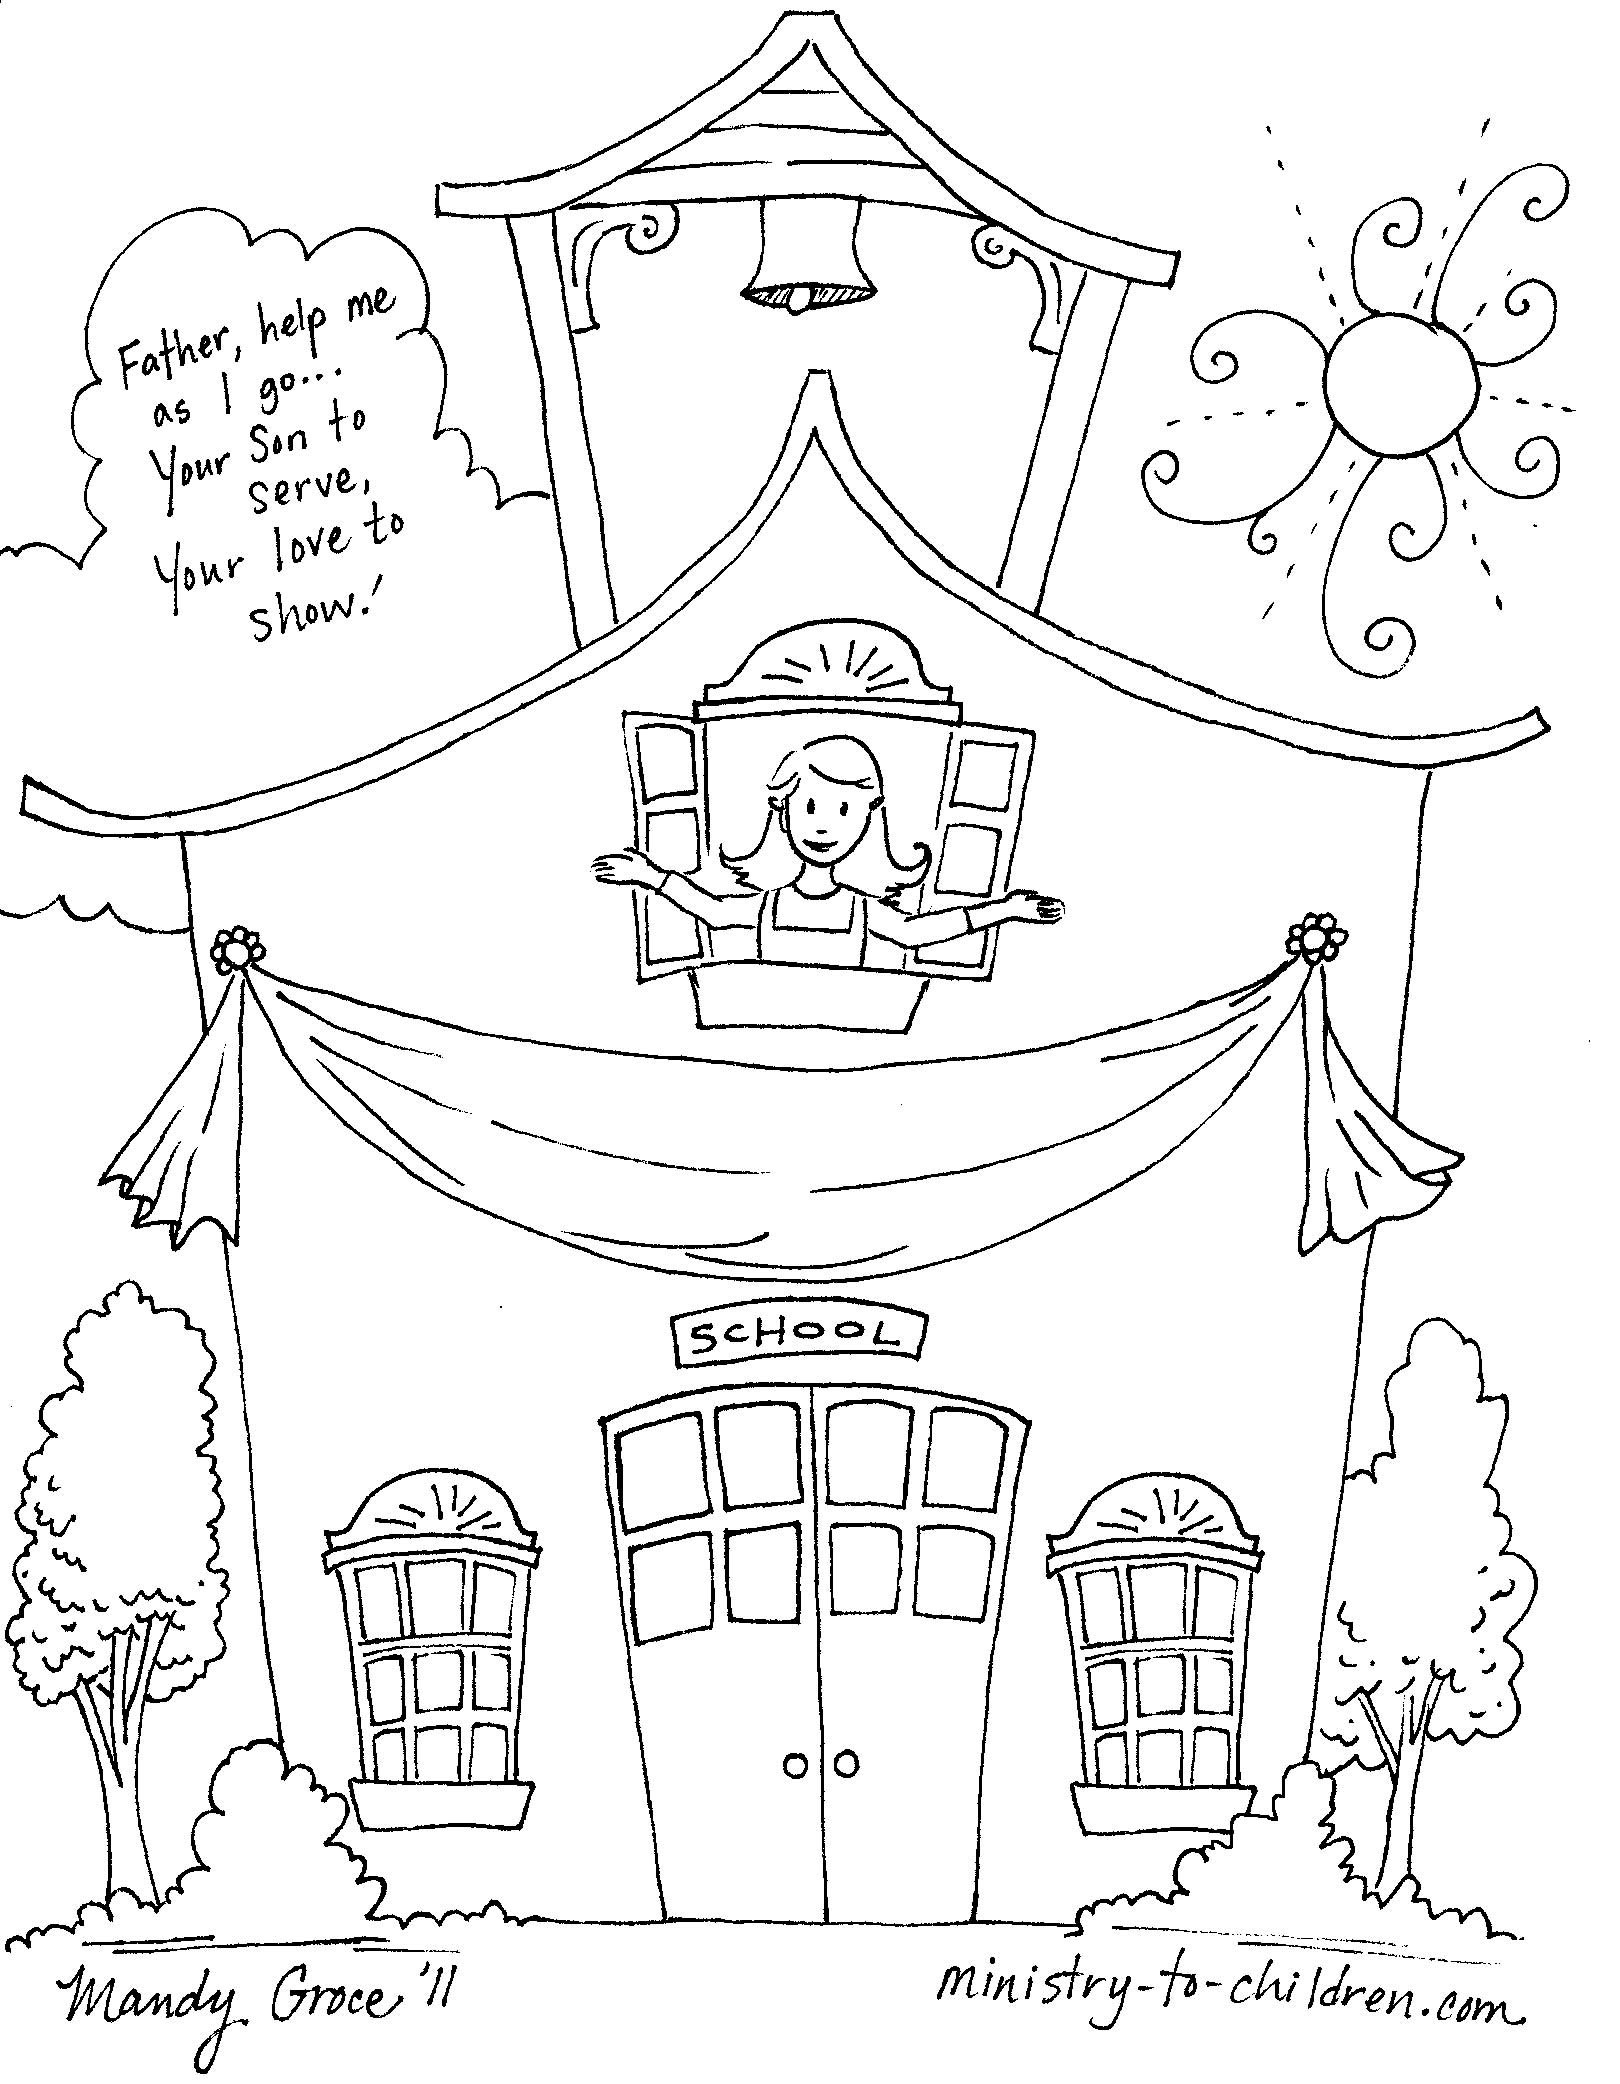 Coloring Pages : Edge Free Printable First Day Of School Colori - Free Printable First Day Of School Coloring Pages